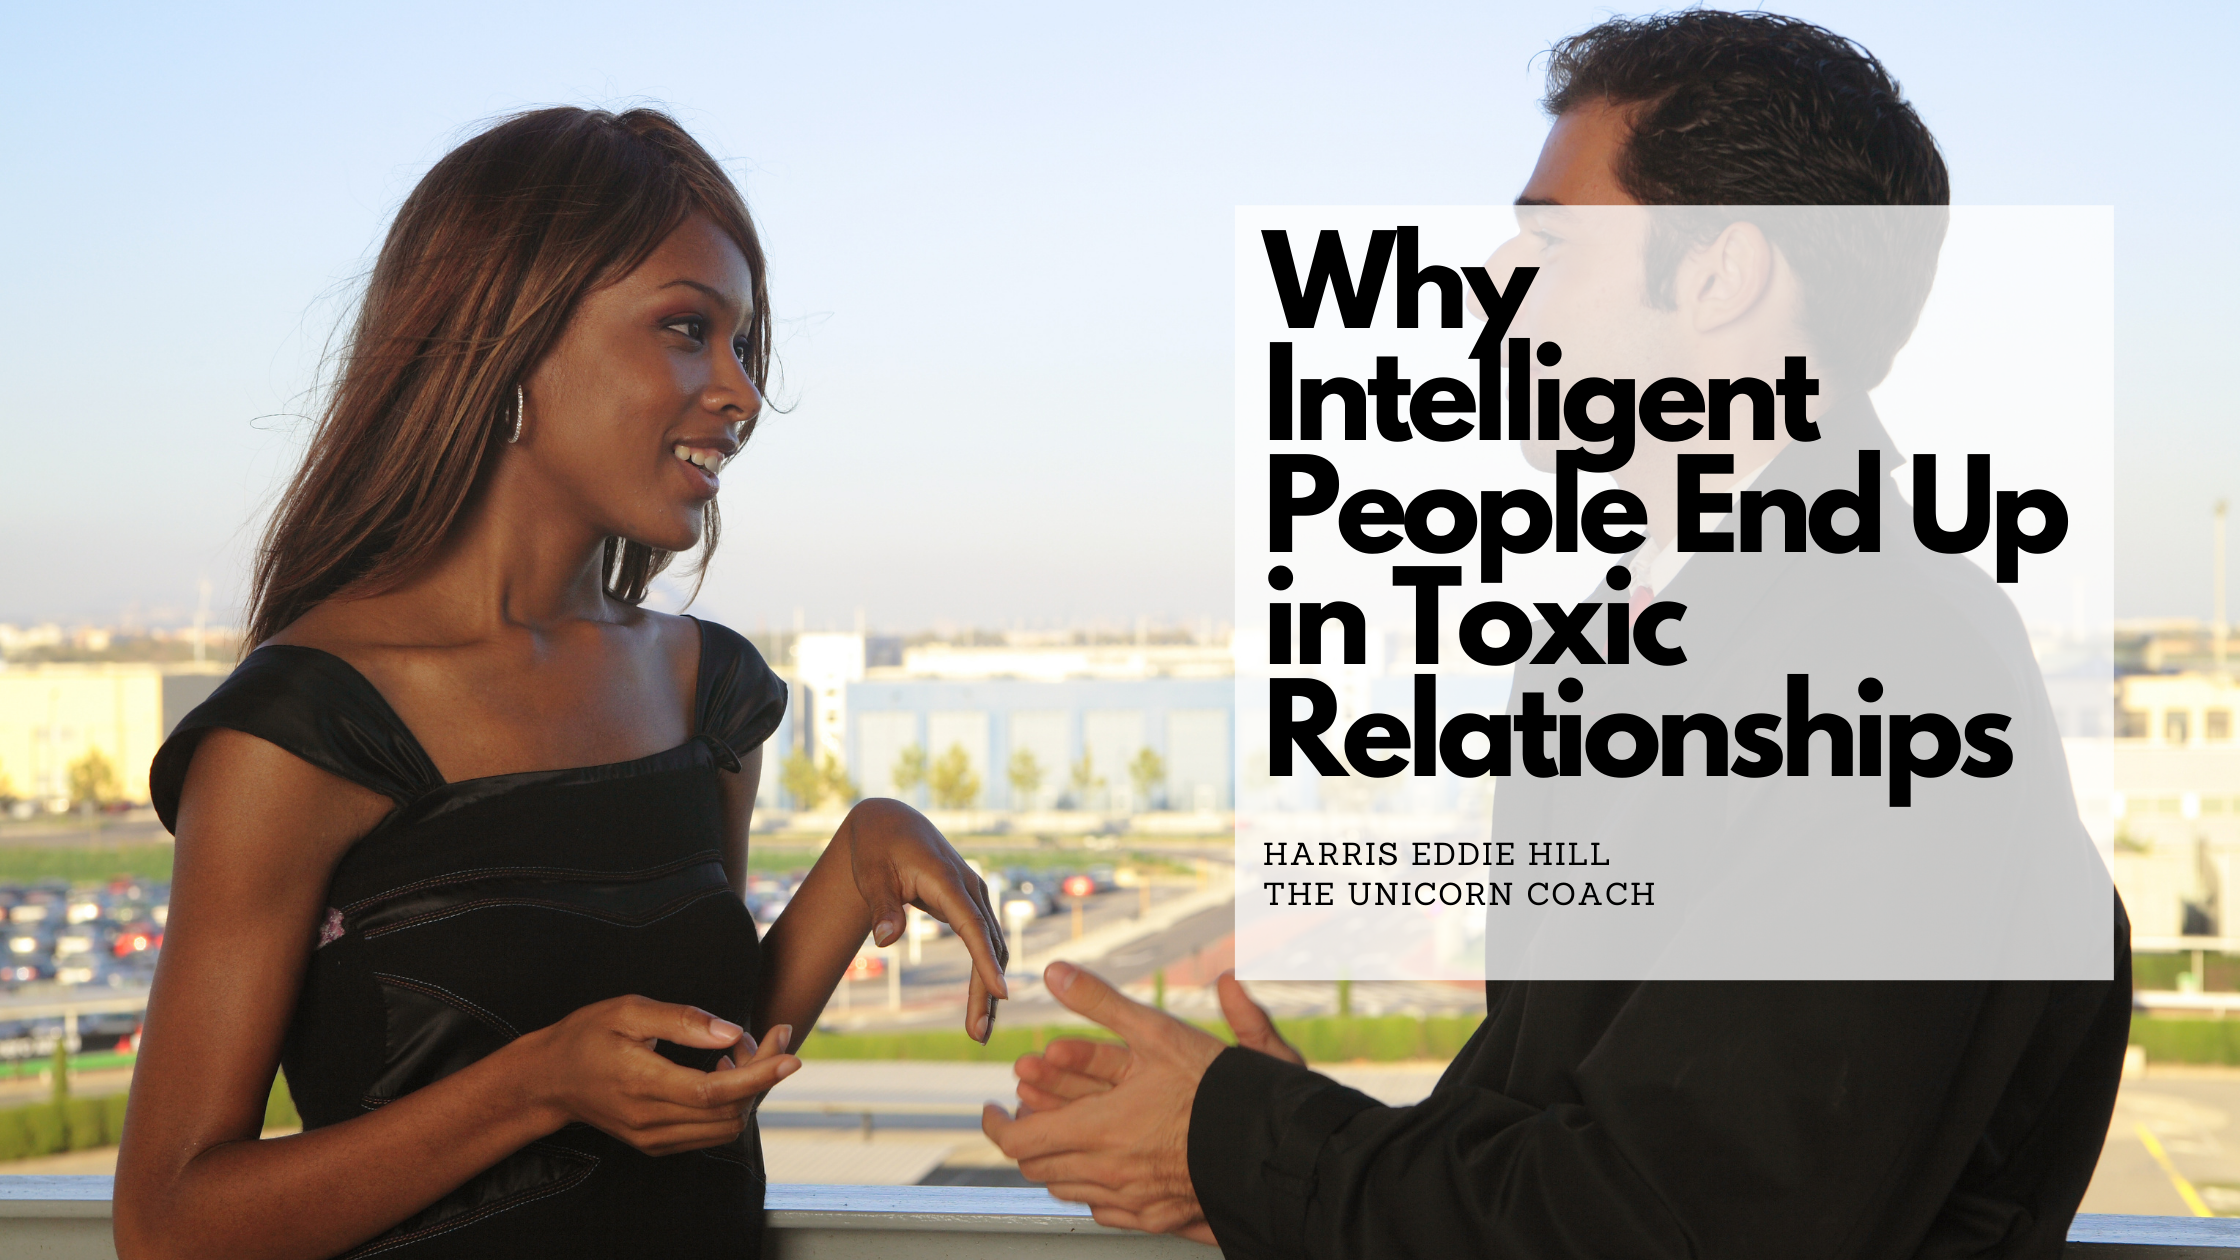 Why Intelligent People End Up in Toxic Relationships